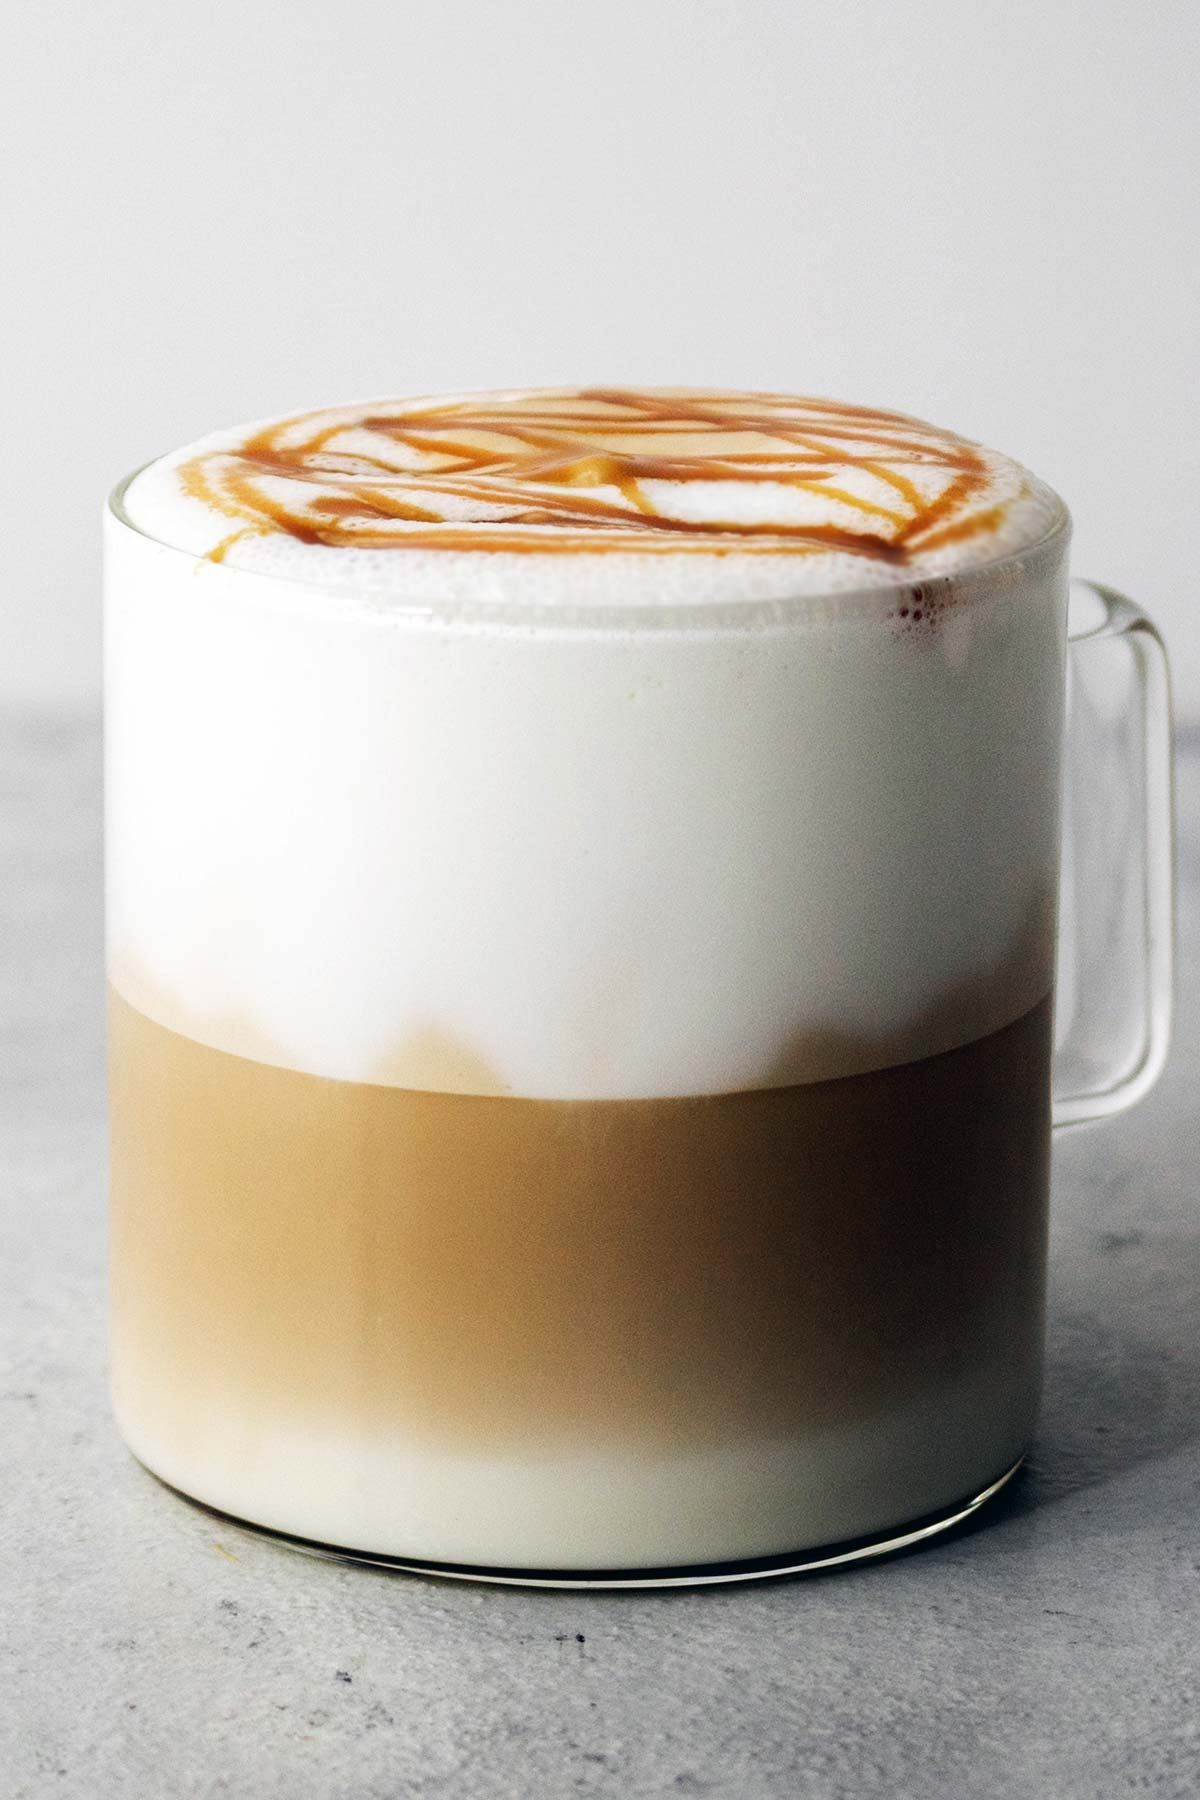 Starbucks Caramel Macchiato drink in a glass mug.